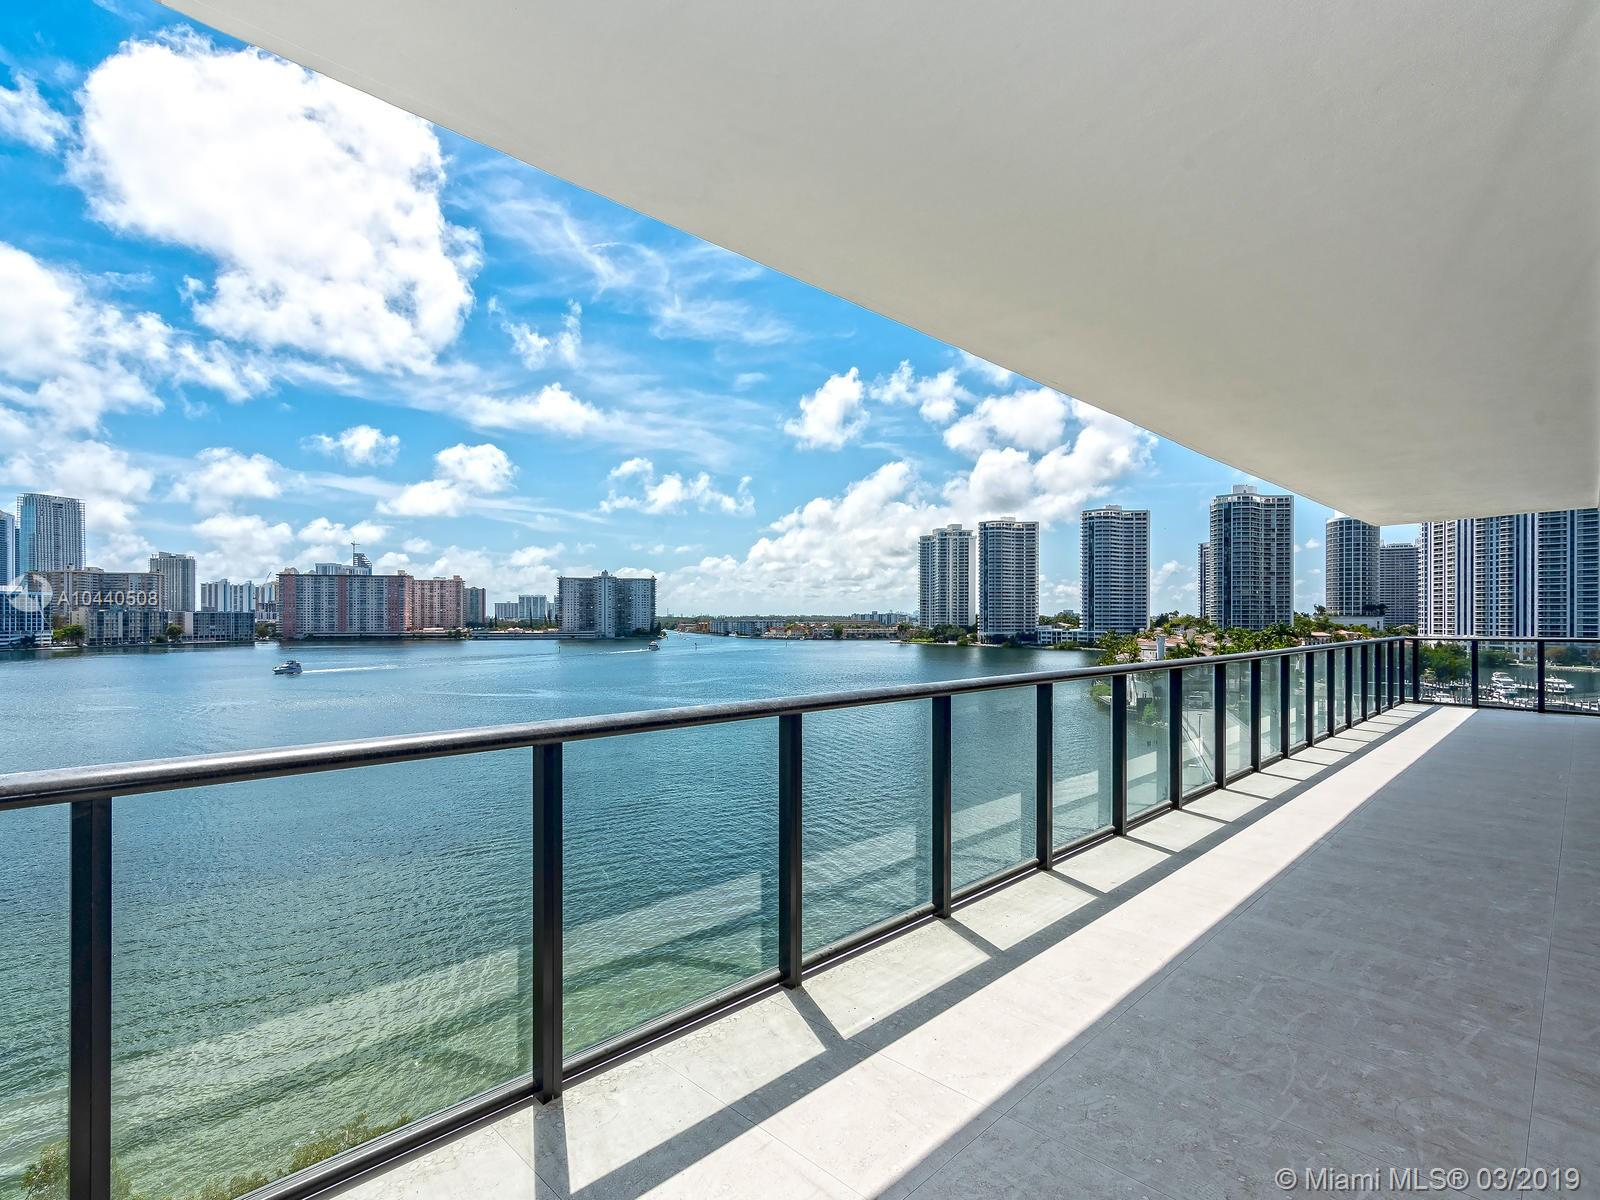 Beautiful corner unit ready to move in. Prive, an island beyond extraordinary in a 8 acres island with 70,000 feet of indoor social spaces, 2 gyms, private restaurant, massage treatment room and sauna, tennis court, toddlers' playroom, billiards table and 2 gorgeous pools . This luxurious 7th floor, 4bed/5.5 bath offers wonderful panoramic views of the ocean and inter-coastal and a private marina. Very easy to show.